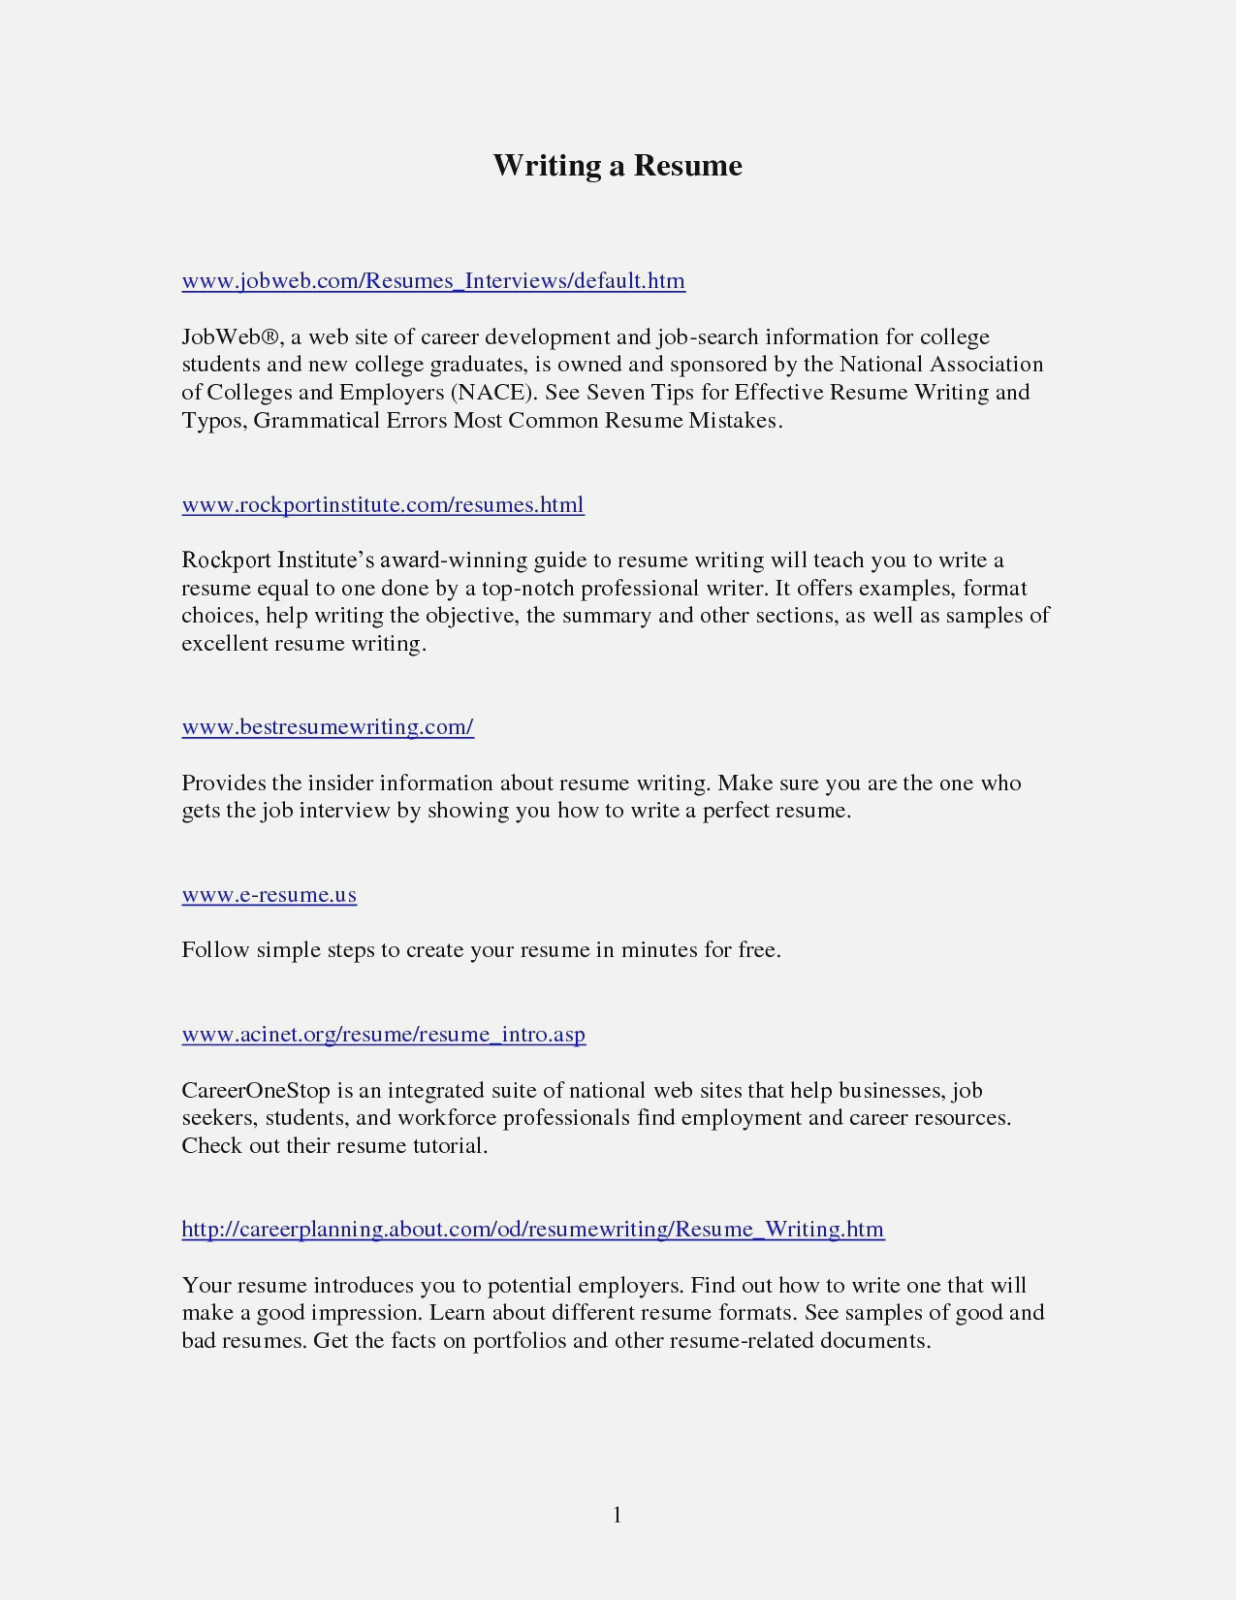 Professional Summary for Resume No Work Experience - 14 Various Ways to Do